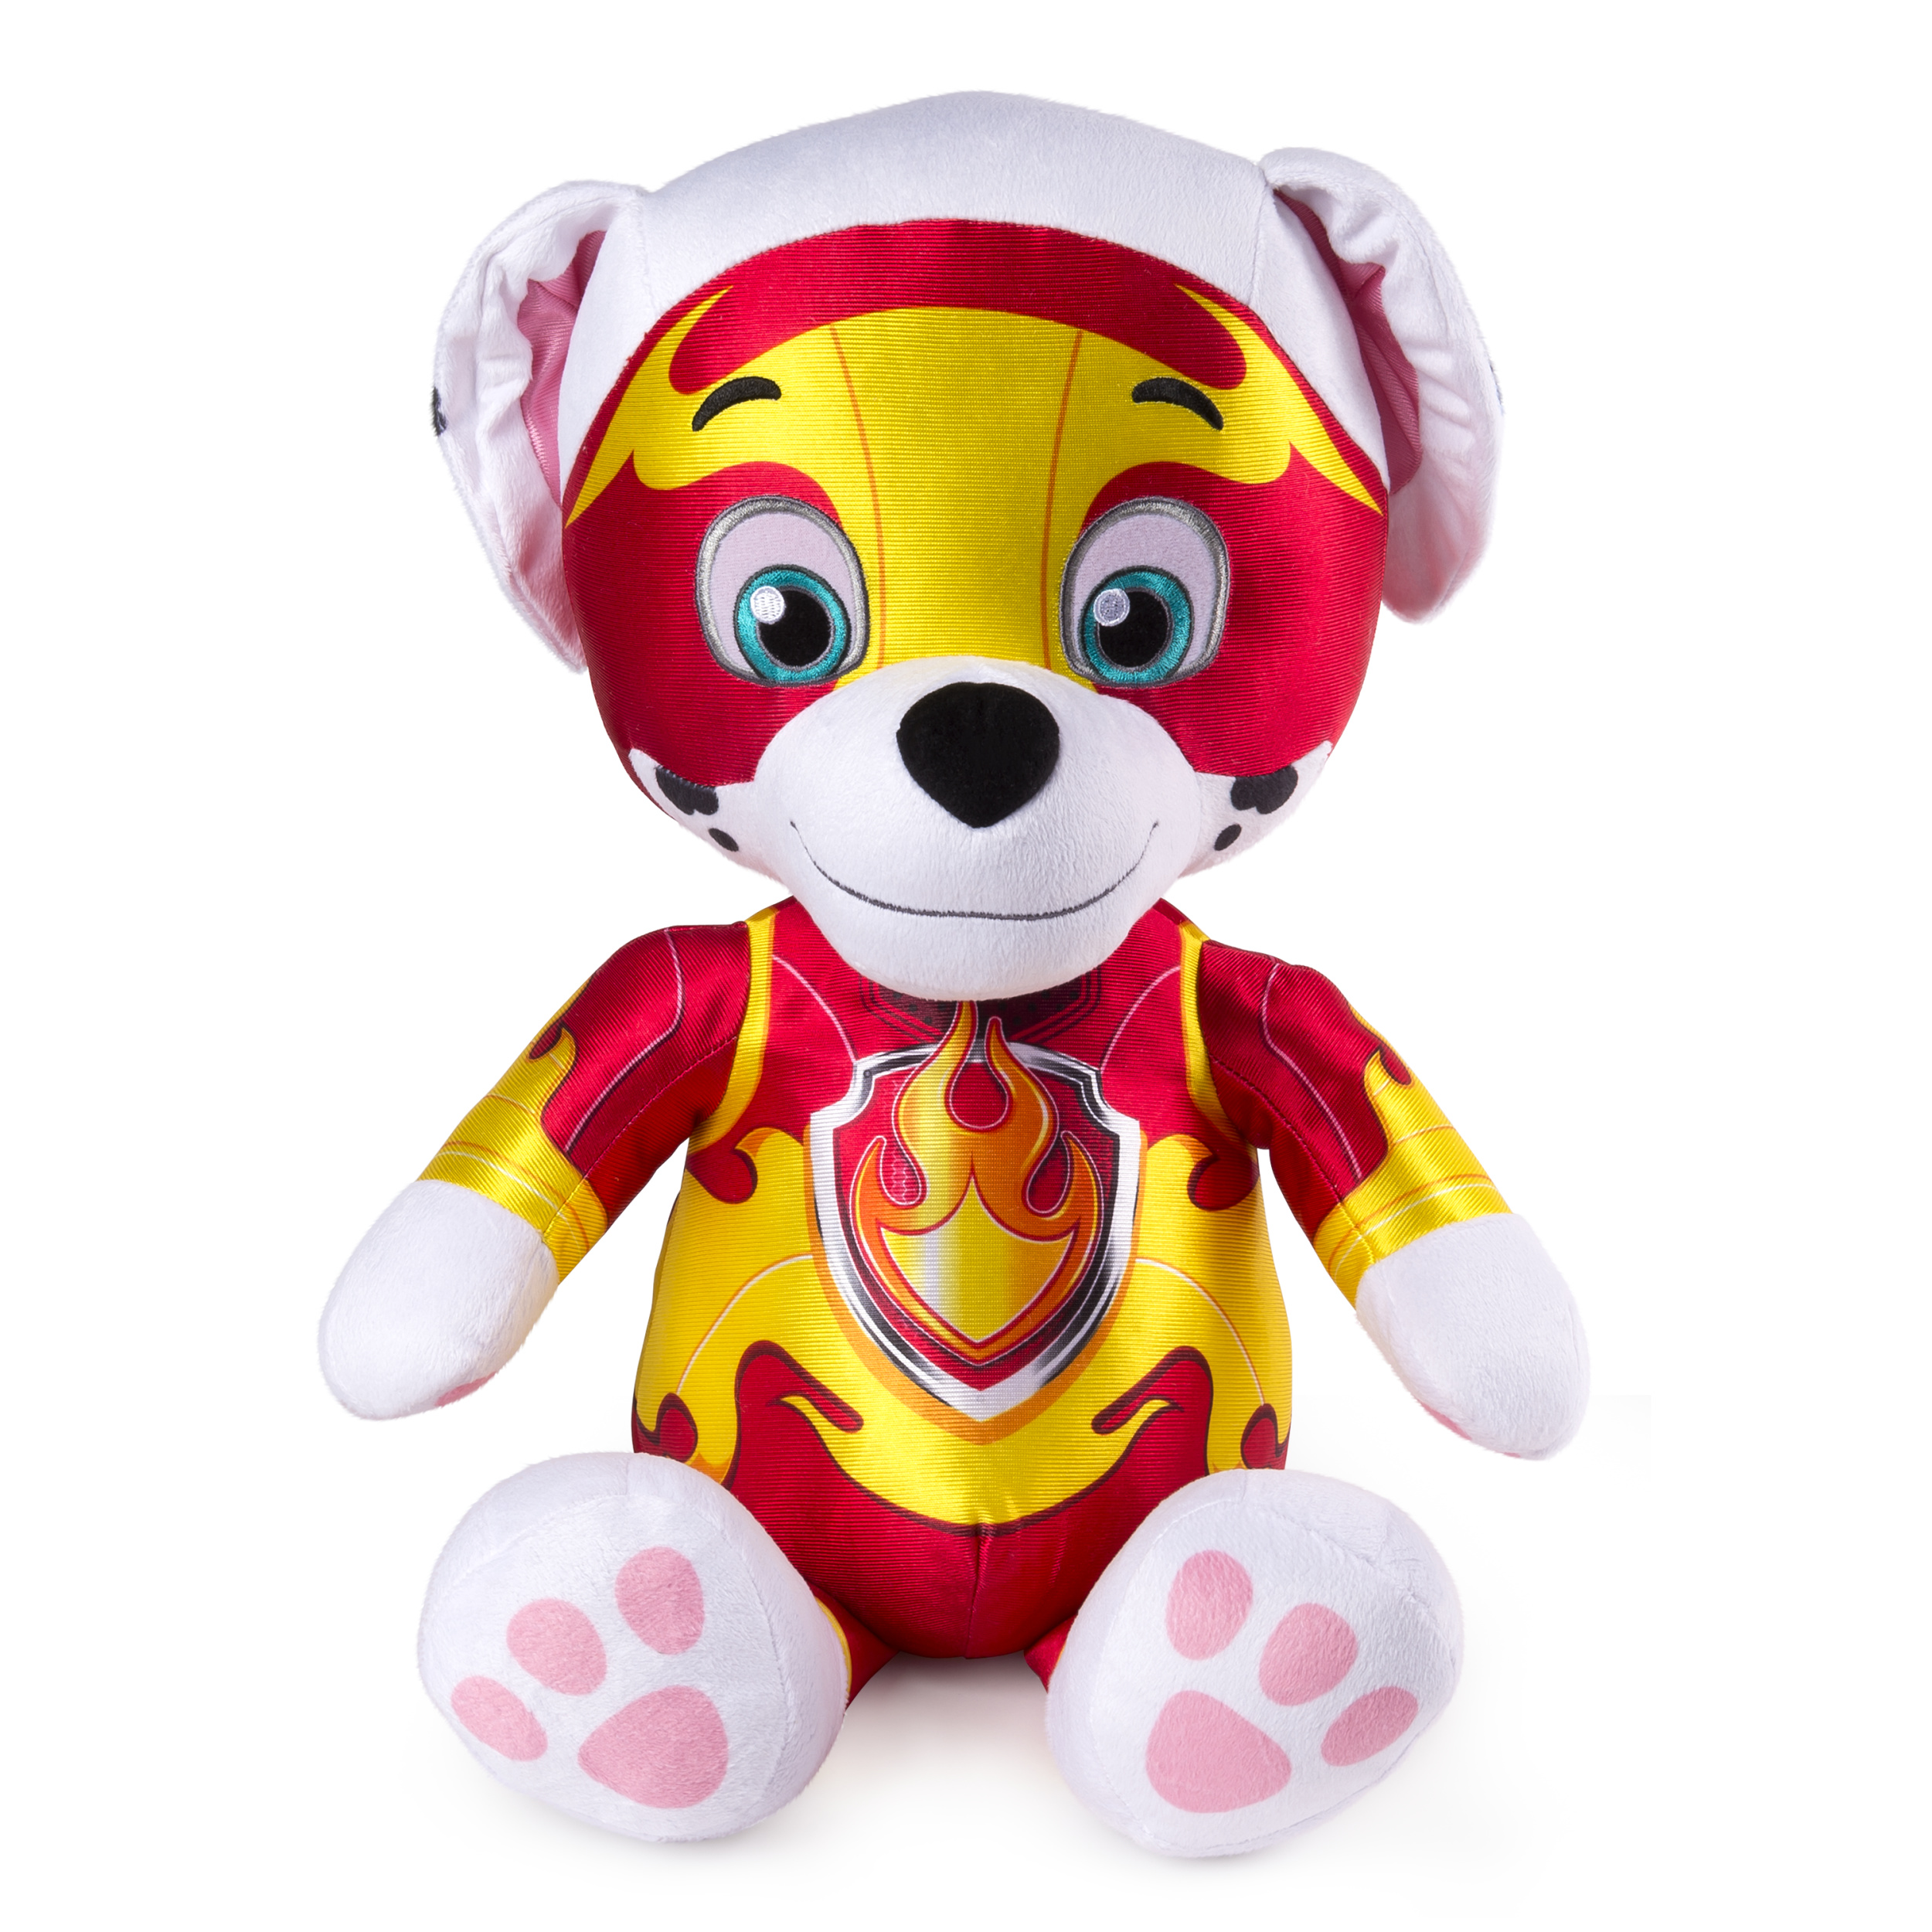 "PAW Patrol - 24"" Mighty Pups Jumbo Marshall Plush for Ages 3 and Up, Wal-Mart Exclusive"